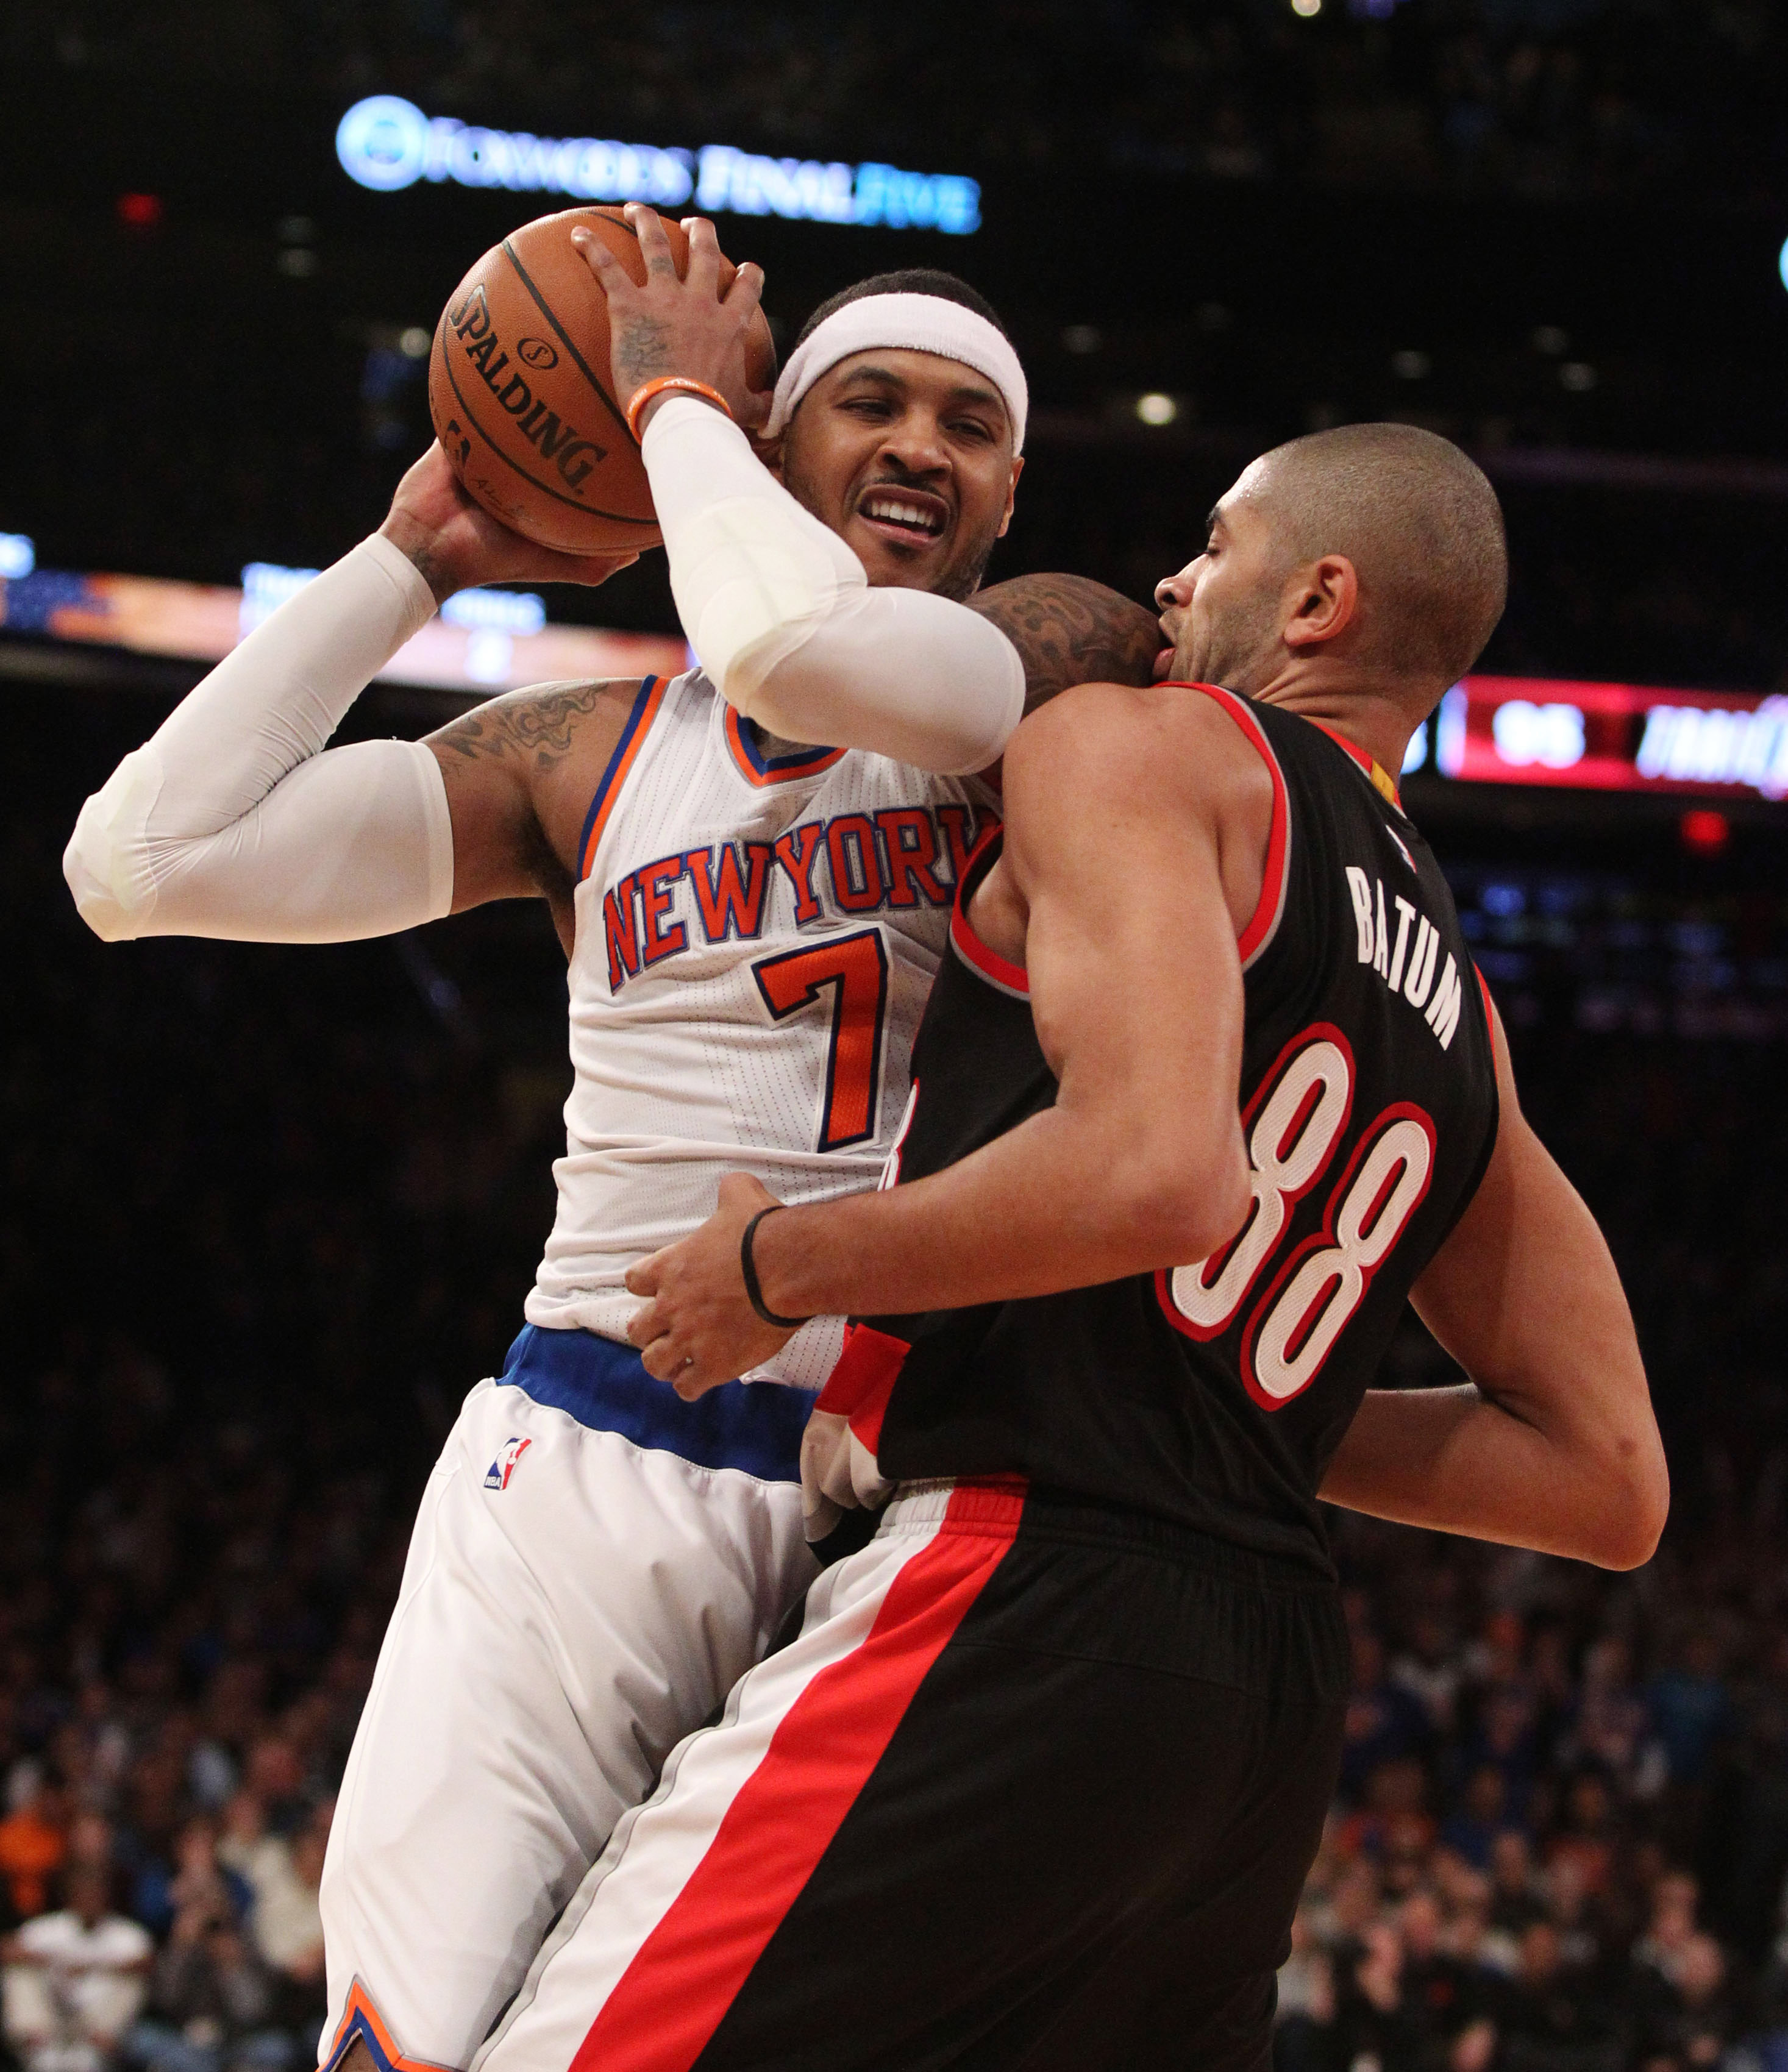 The Knicks continue to fall apart in close games